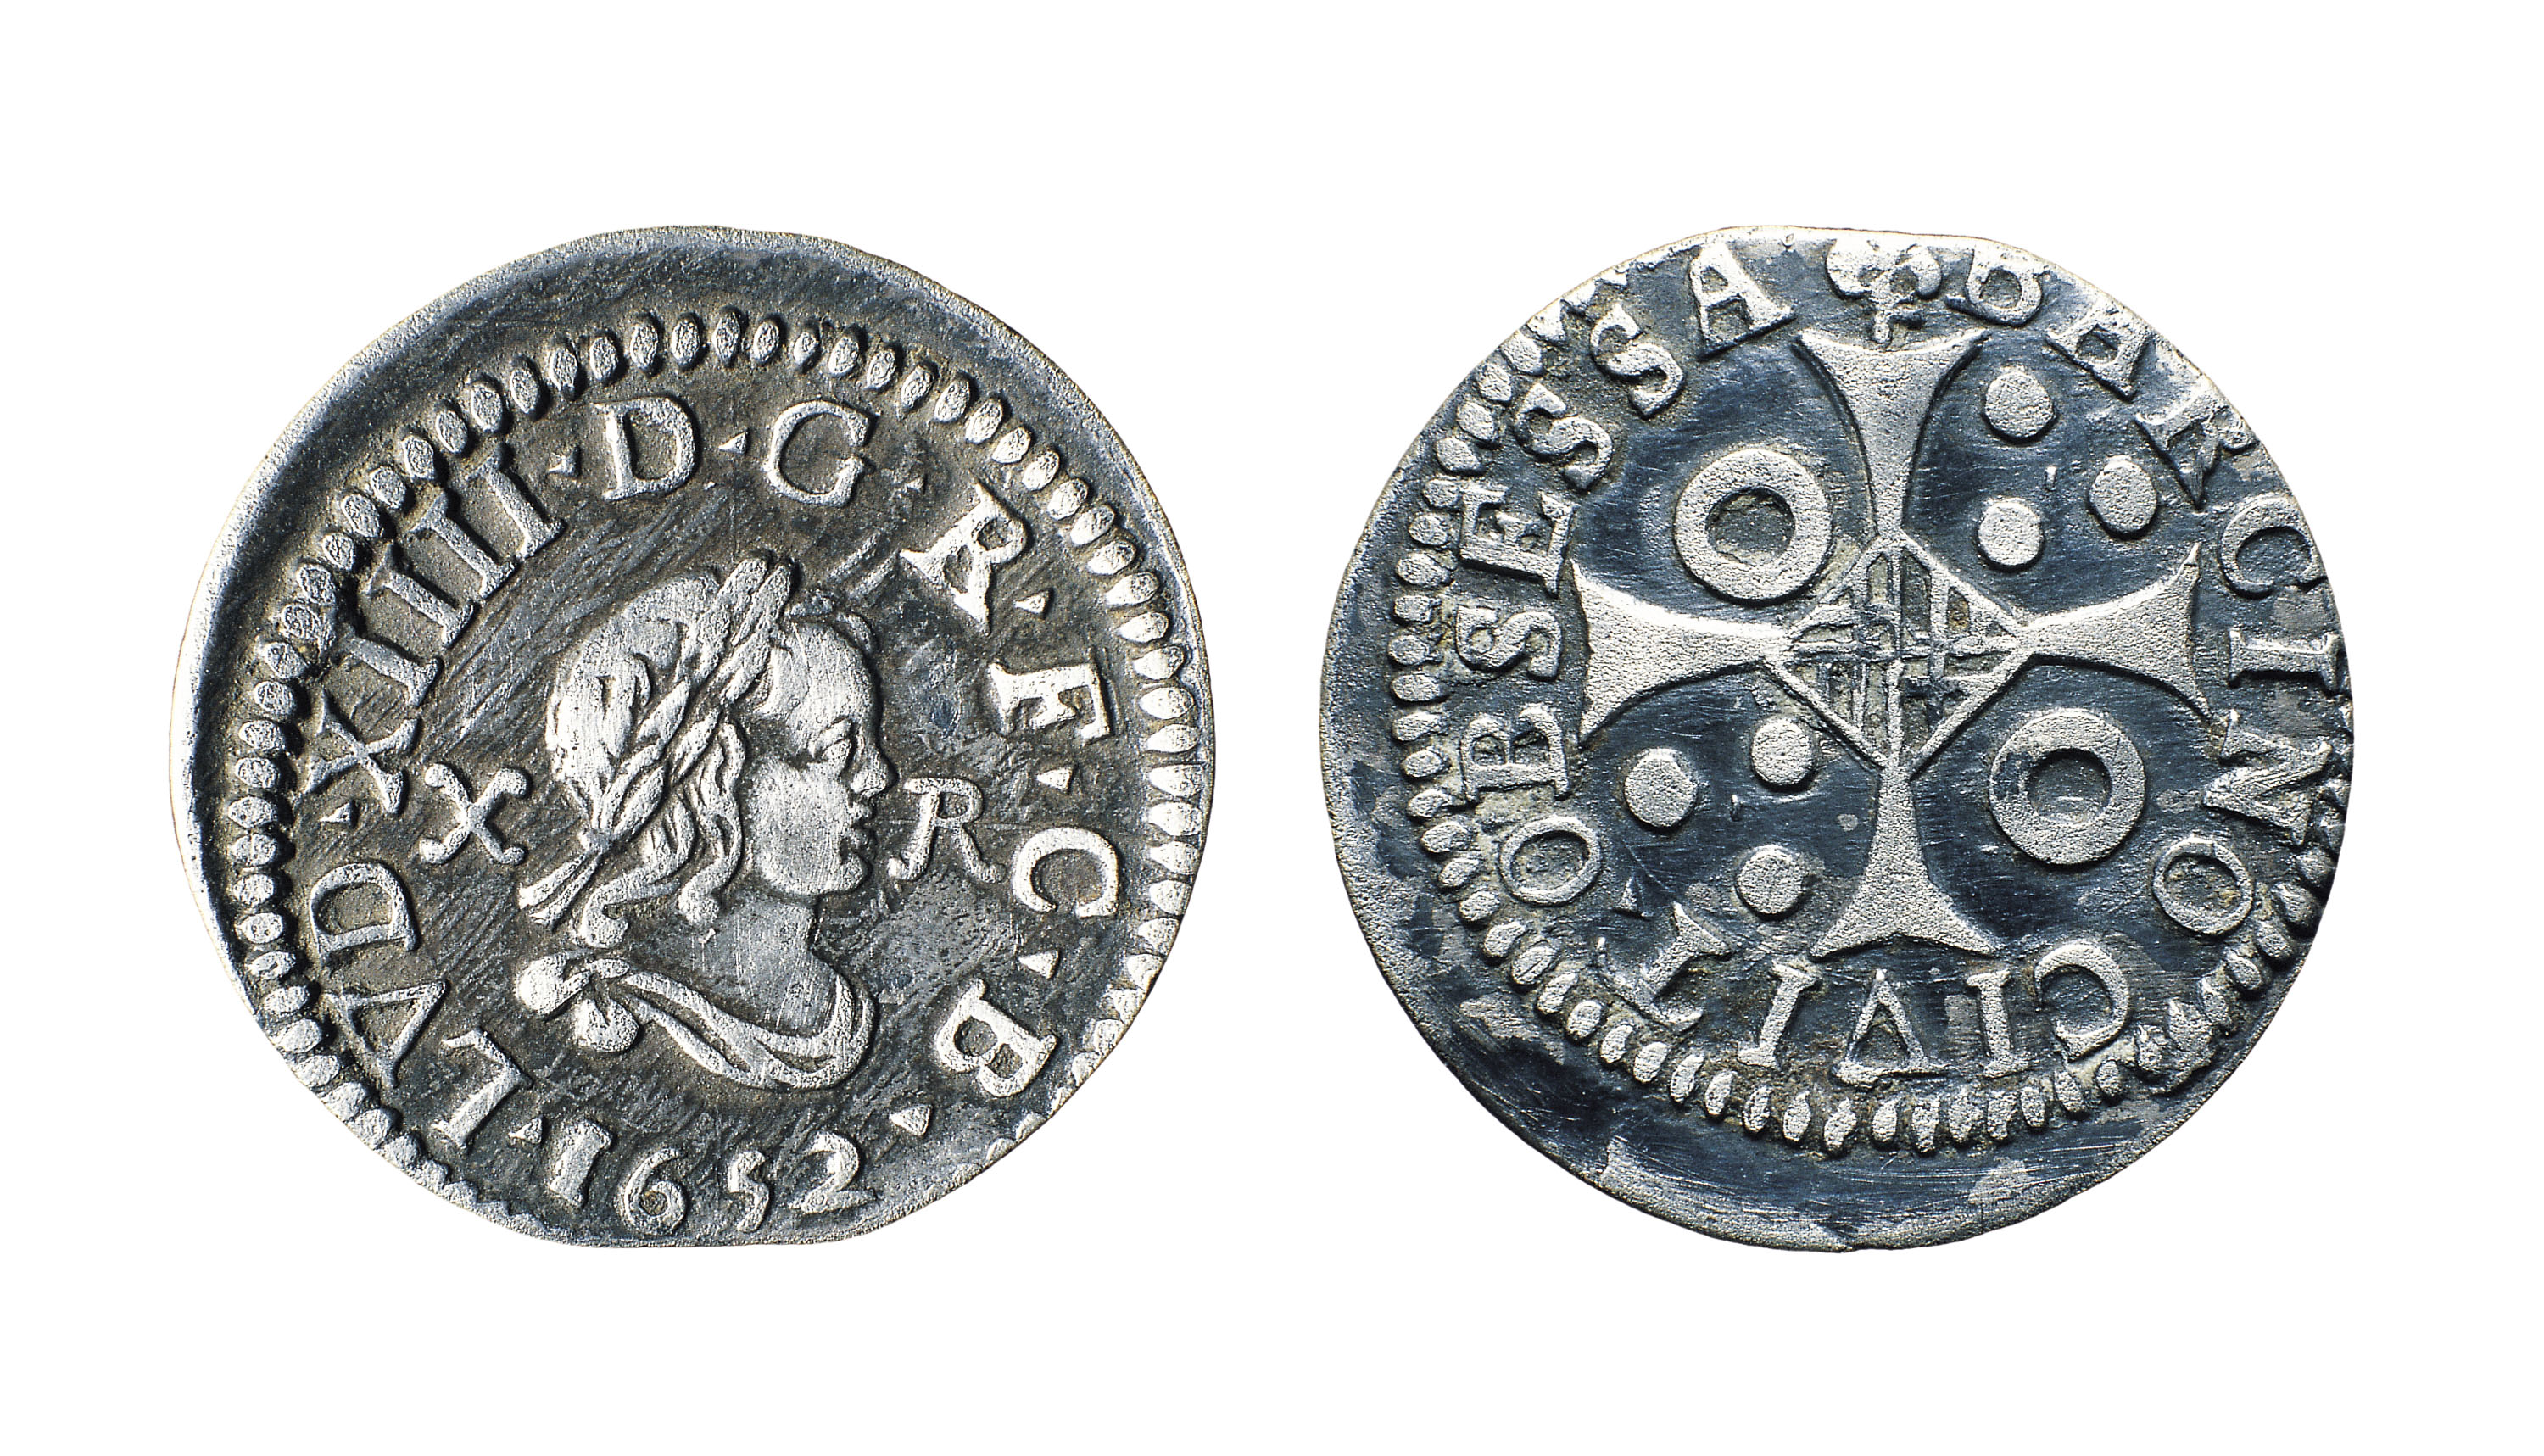 Louis XIV. 10 rals of Barcelona, 1652, silver